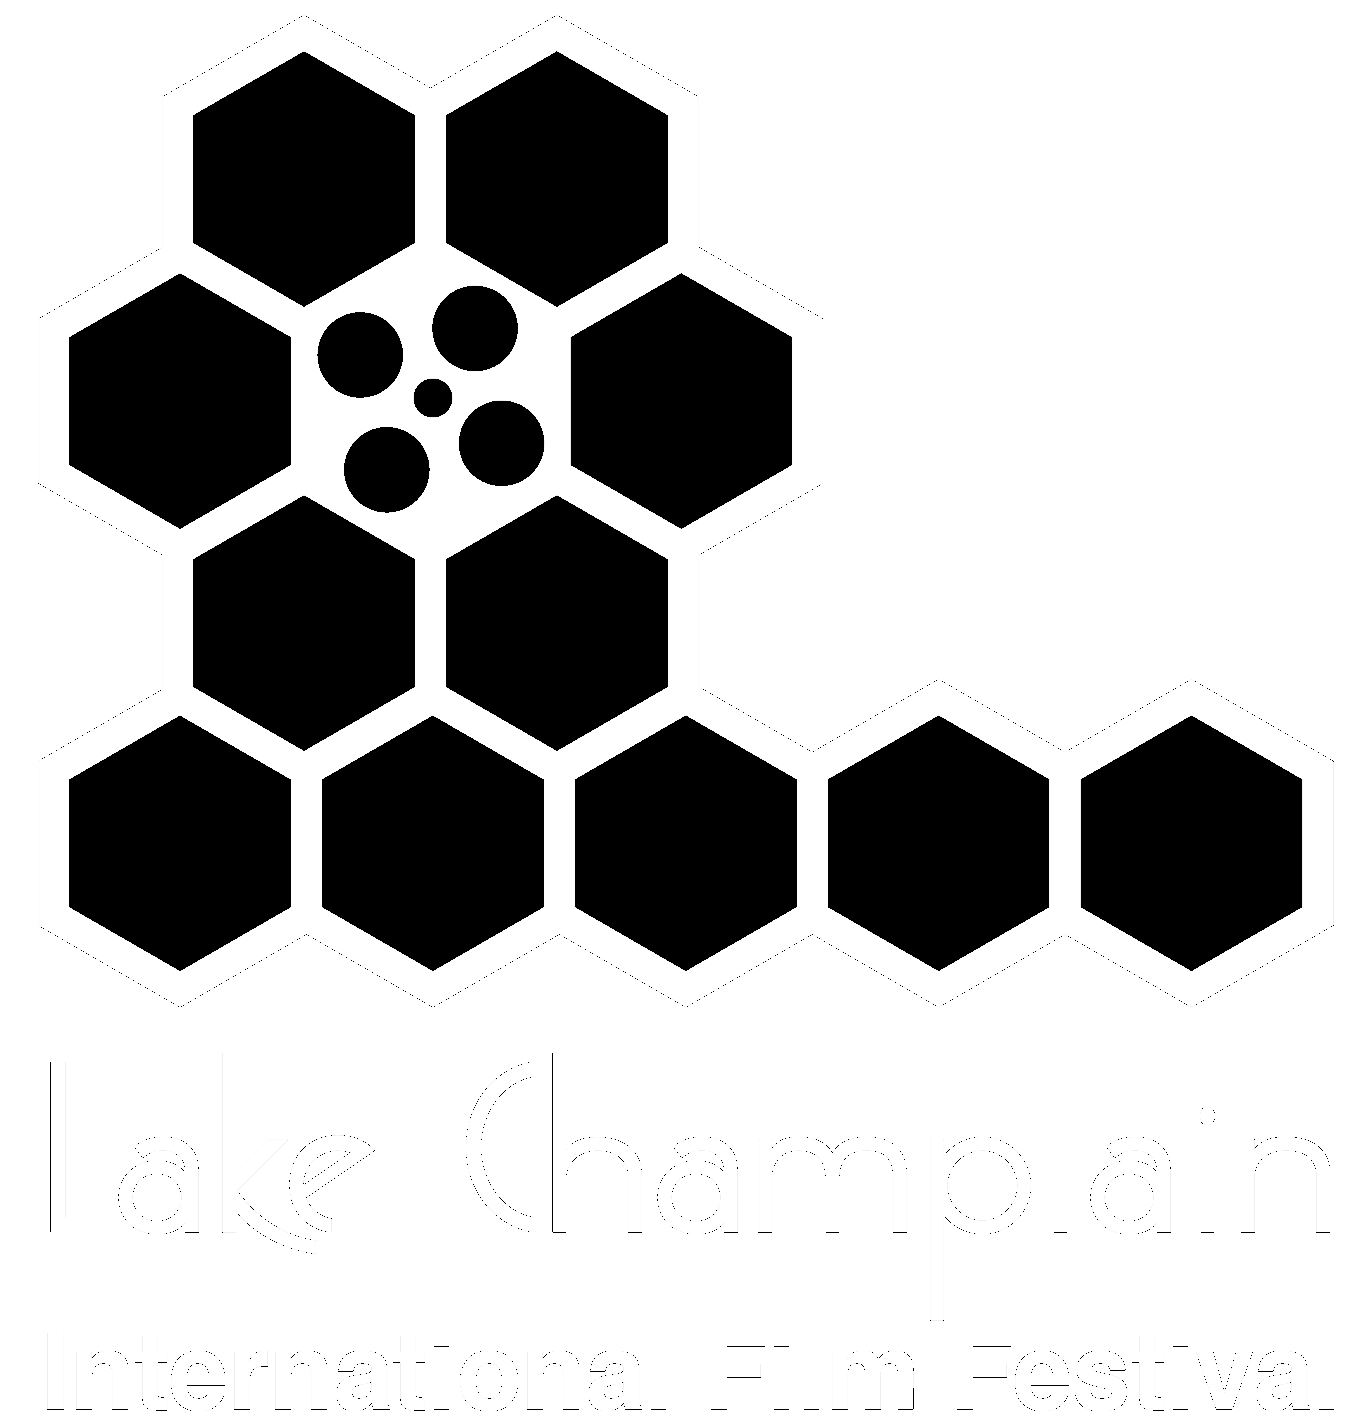 Lake Champlain International Film Festival